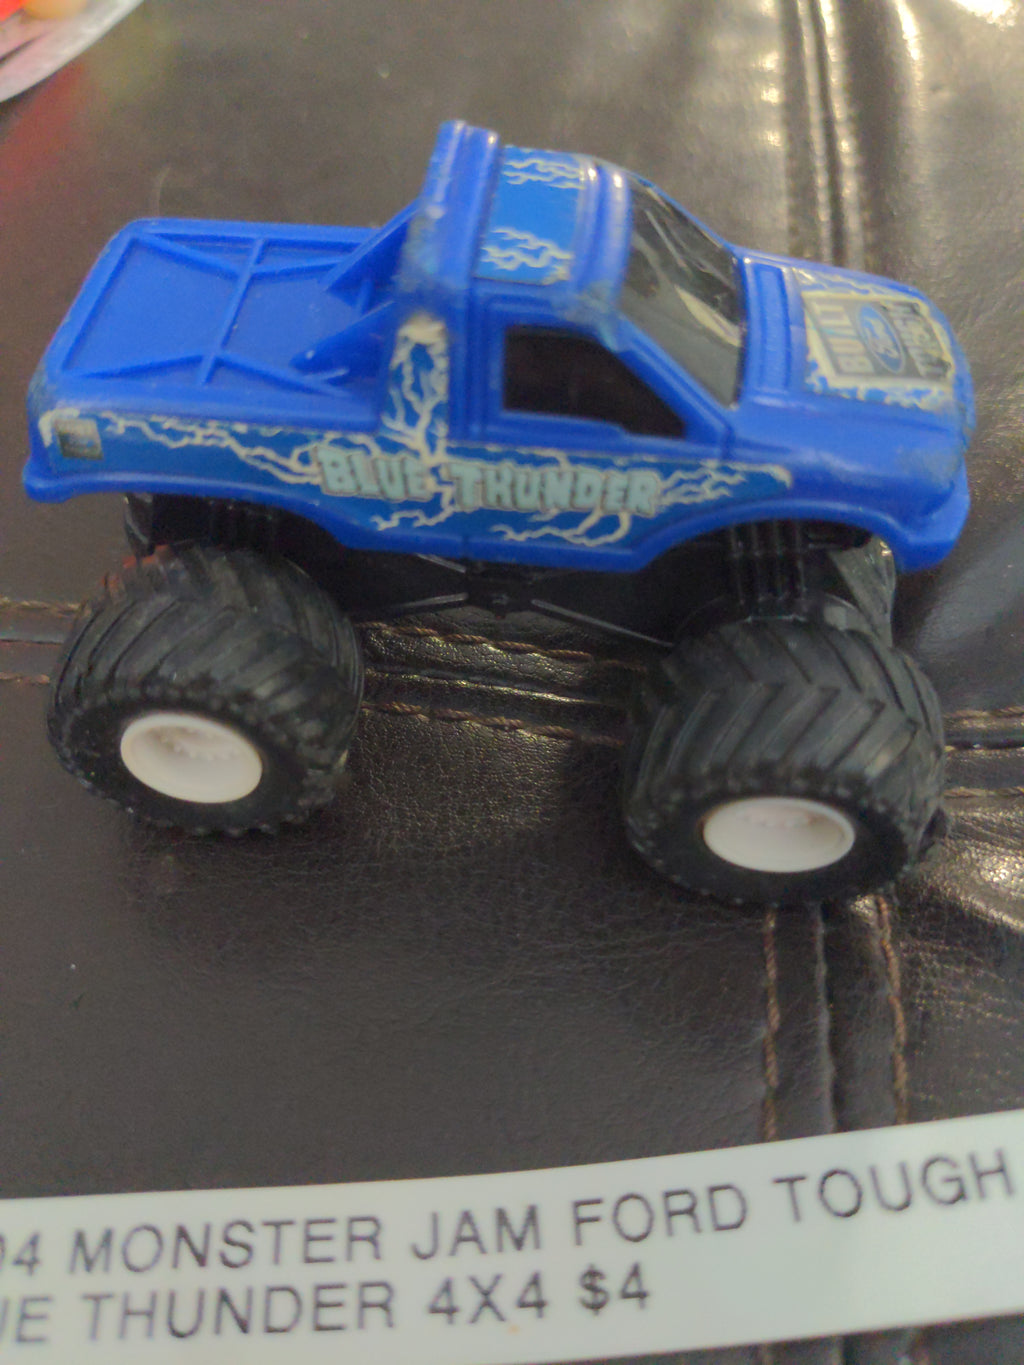 2004 Monster Jam Blue Thunder Ford Tough Pullback 4x4 Car Made In China